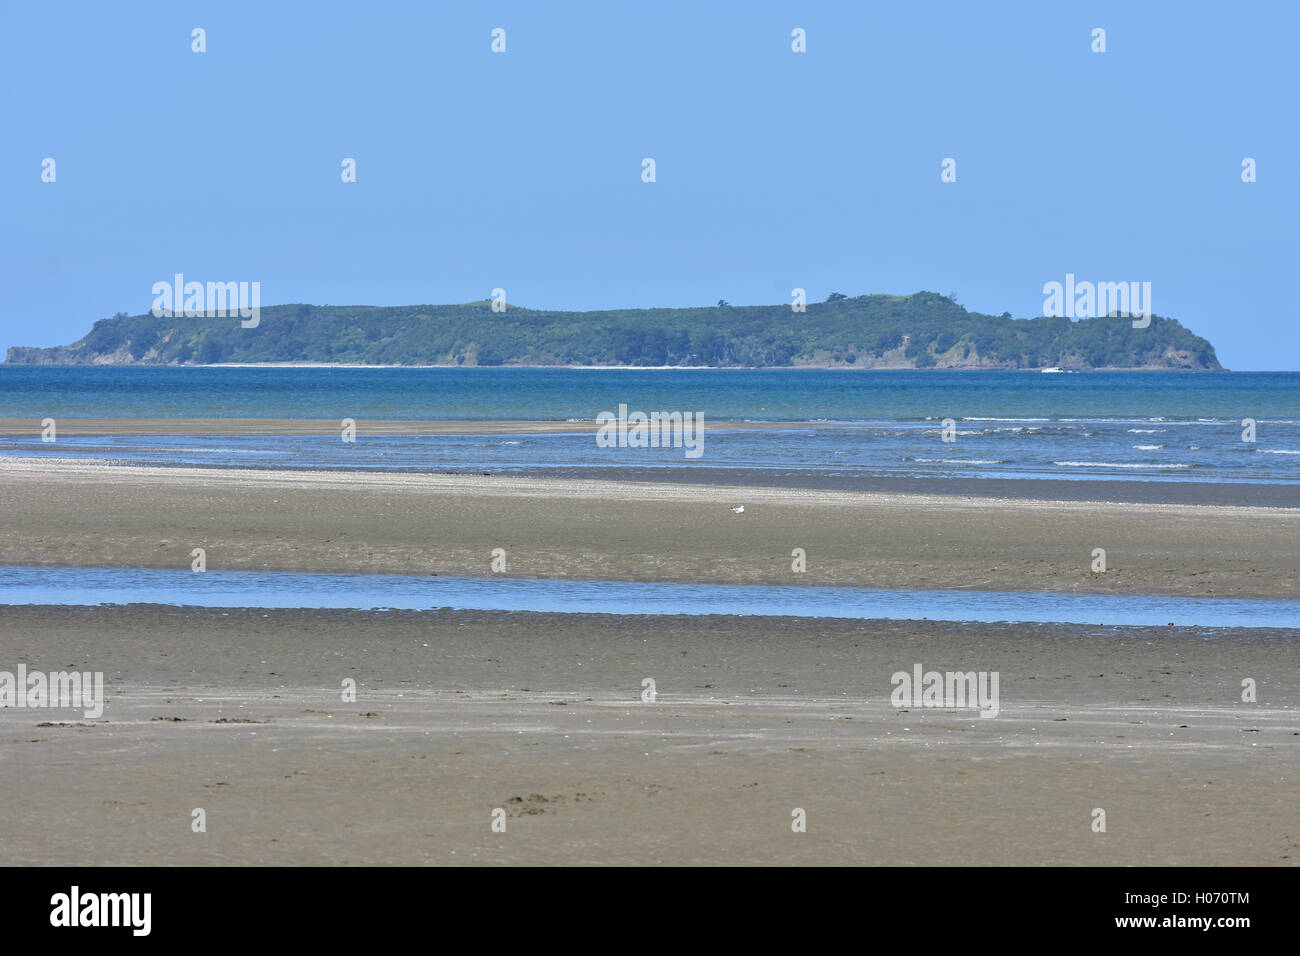 Flat island with some forest coverage from sandy beach at low tide - Stock Image